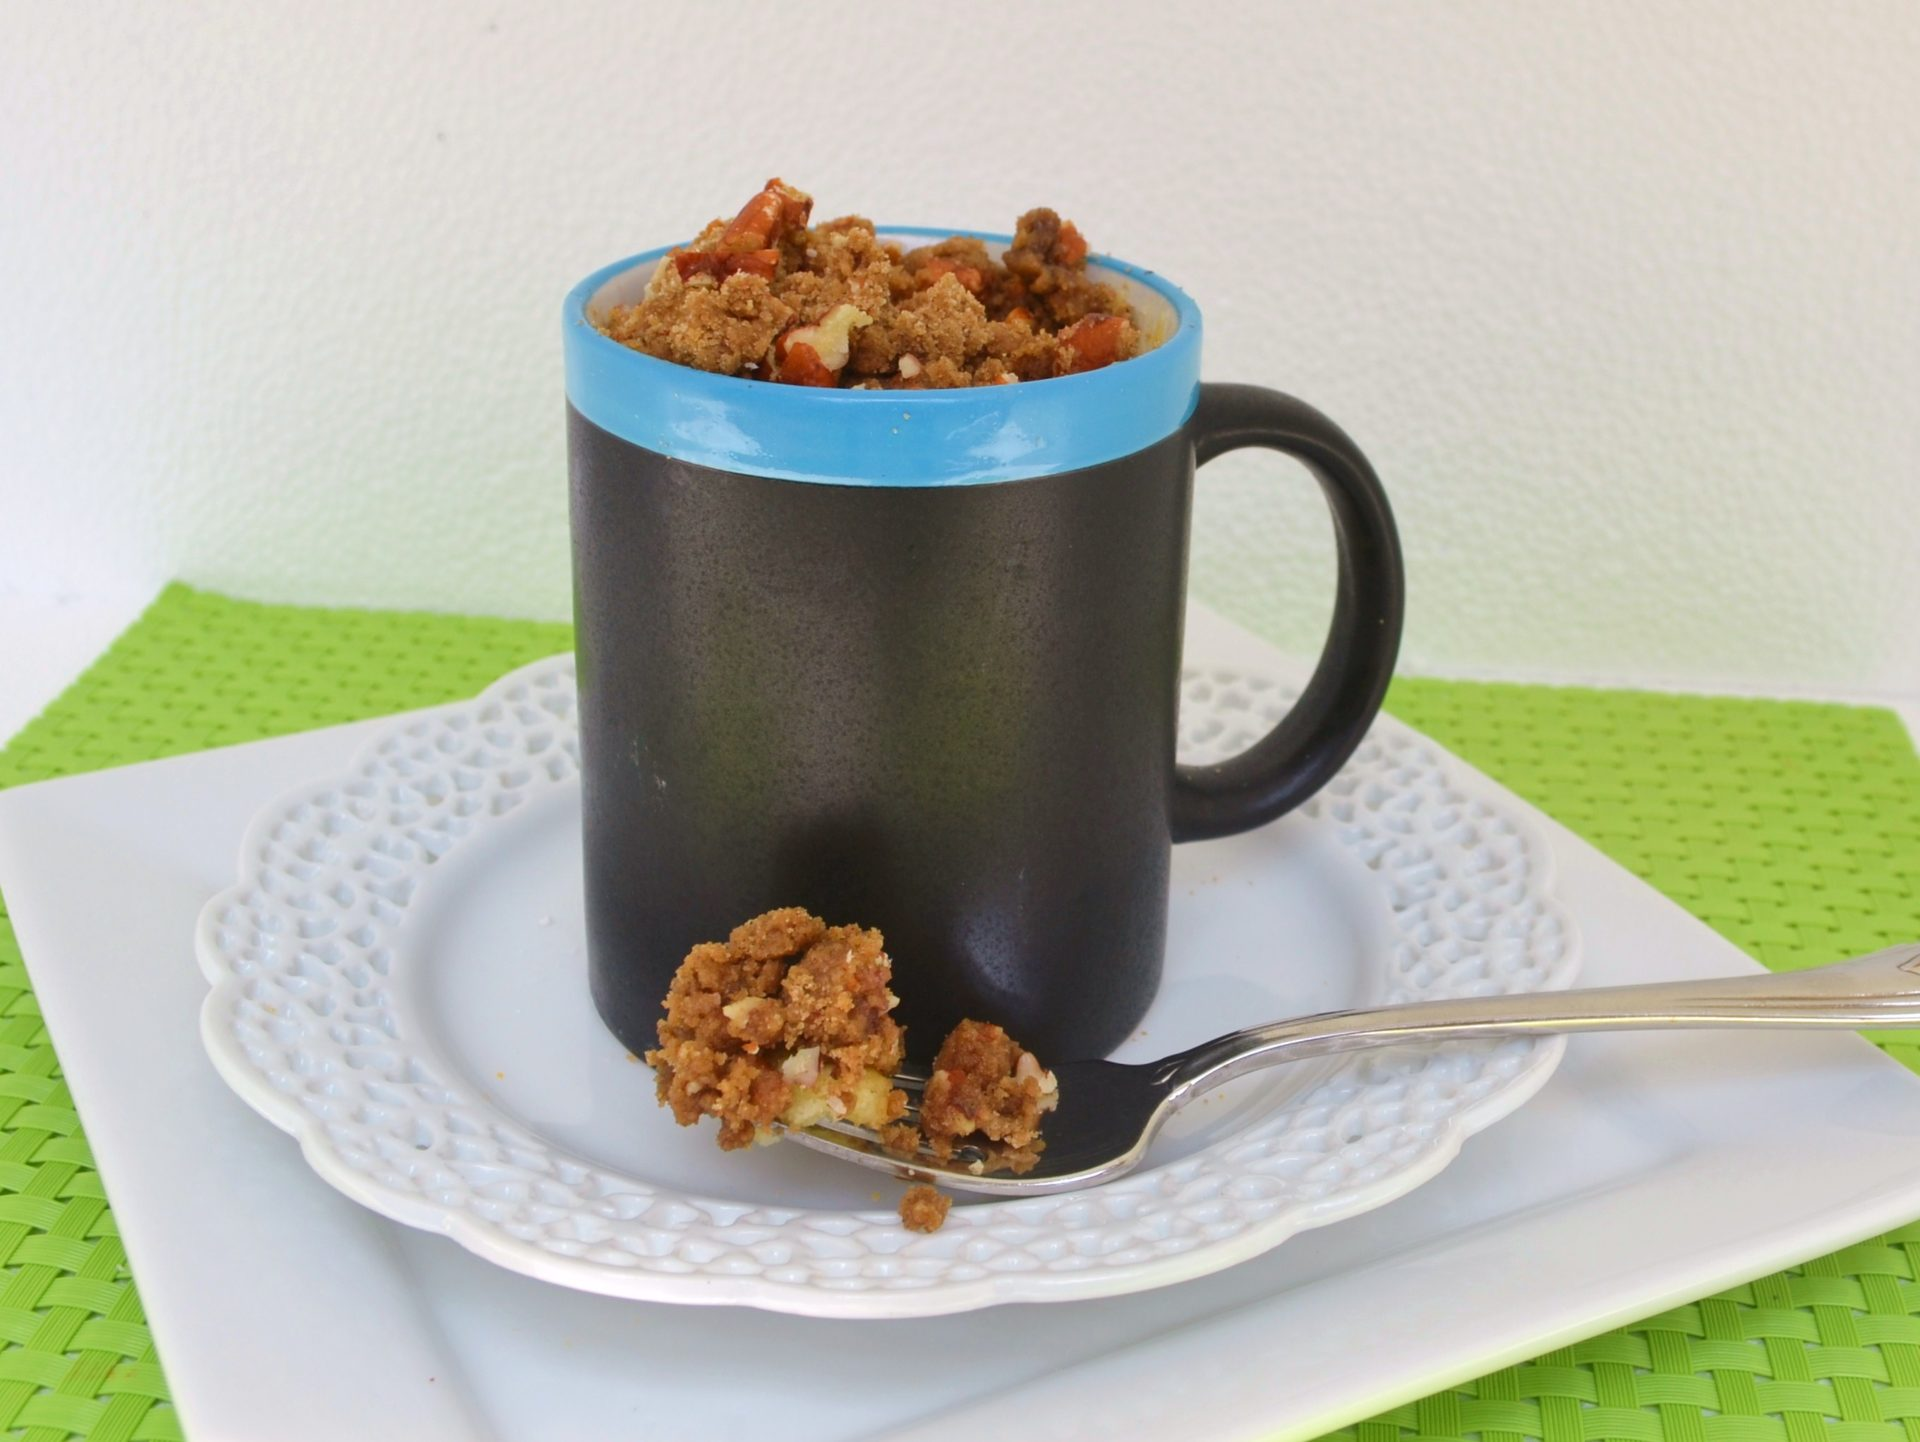 Mug-a-Muffin-college dorm food